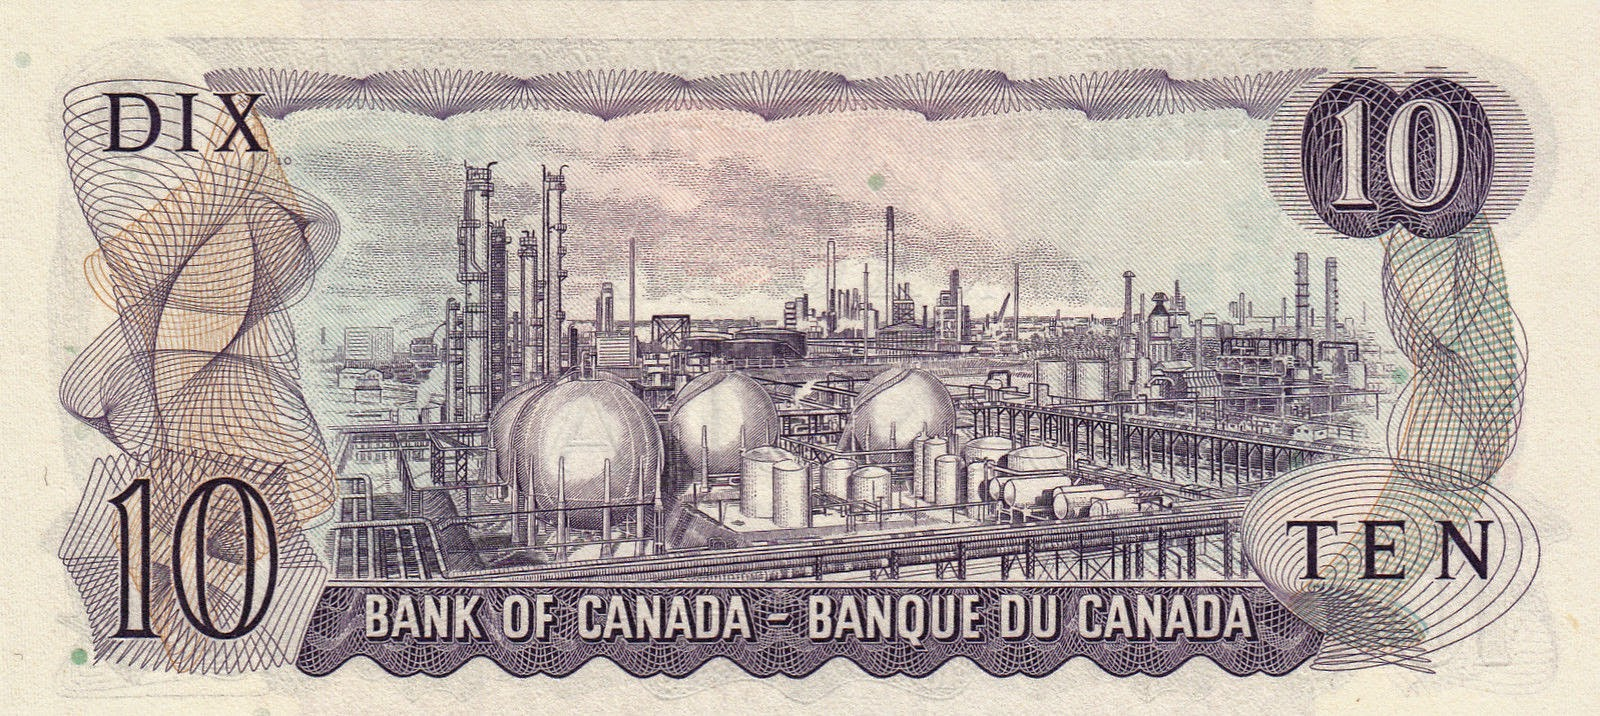 polysar limited essay Polysar limited operates a large petrochemical complex in sarnia, canada with several plants that produce monomers and synthetic rubber on good friday, april 20th, 1984, there was a hydrogen explosion and fire in the litol benzene unit of polysar's styrene i plant.